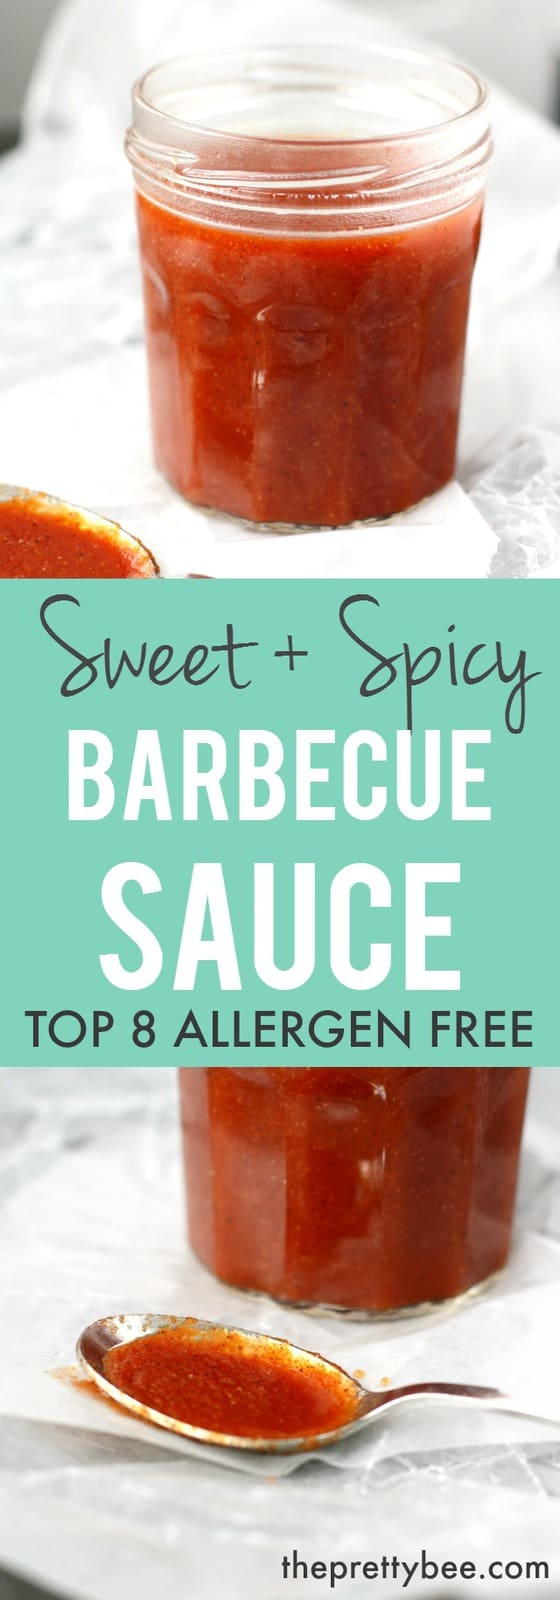 An easy recipe for sweet and spicy barbecue sauce that's gluten free and allergy friendly!